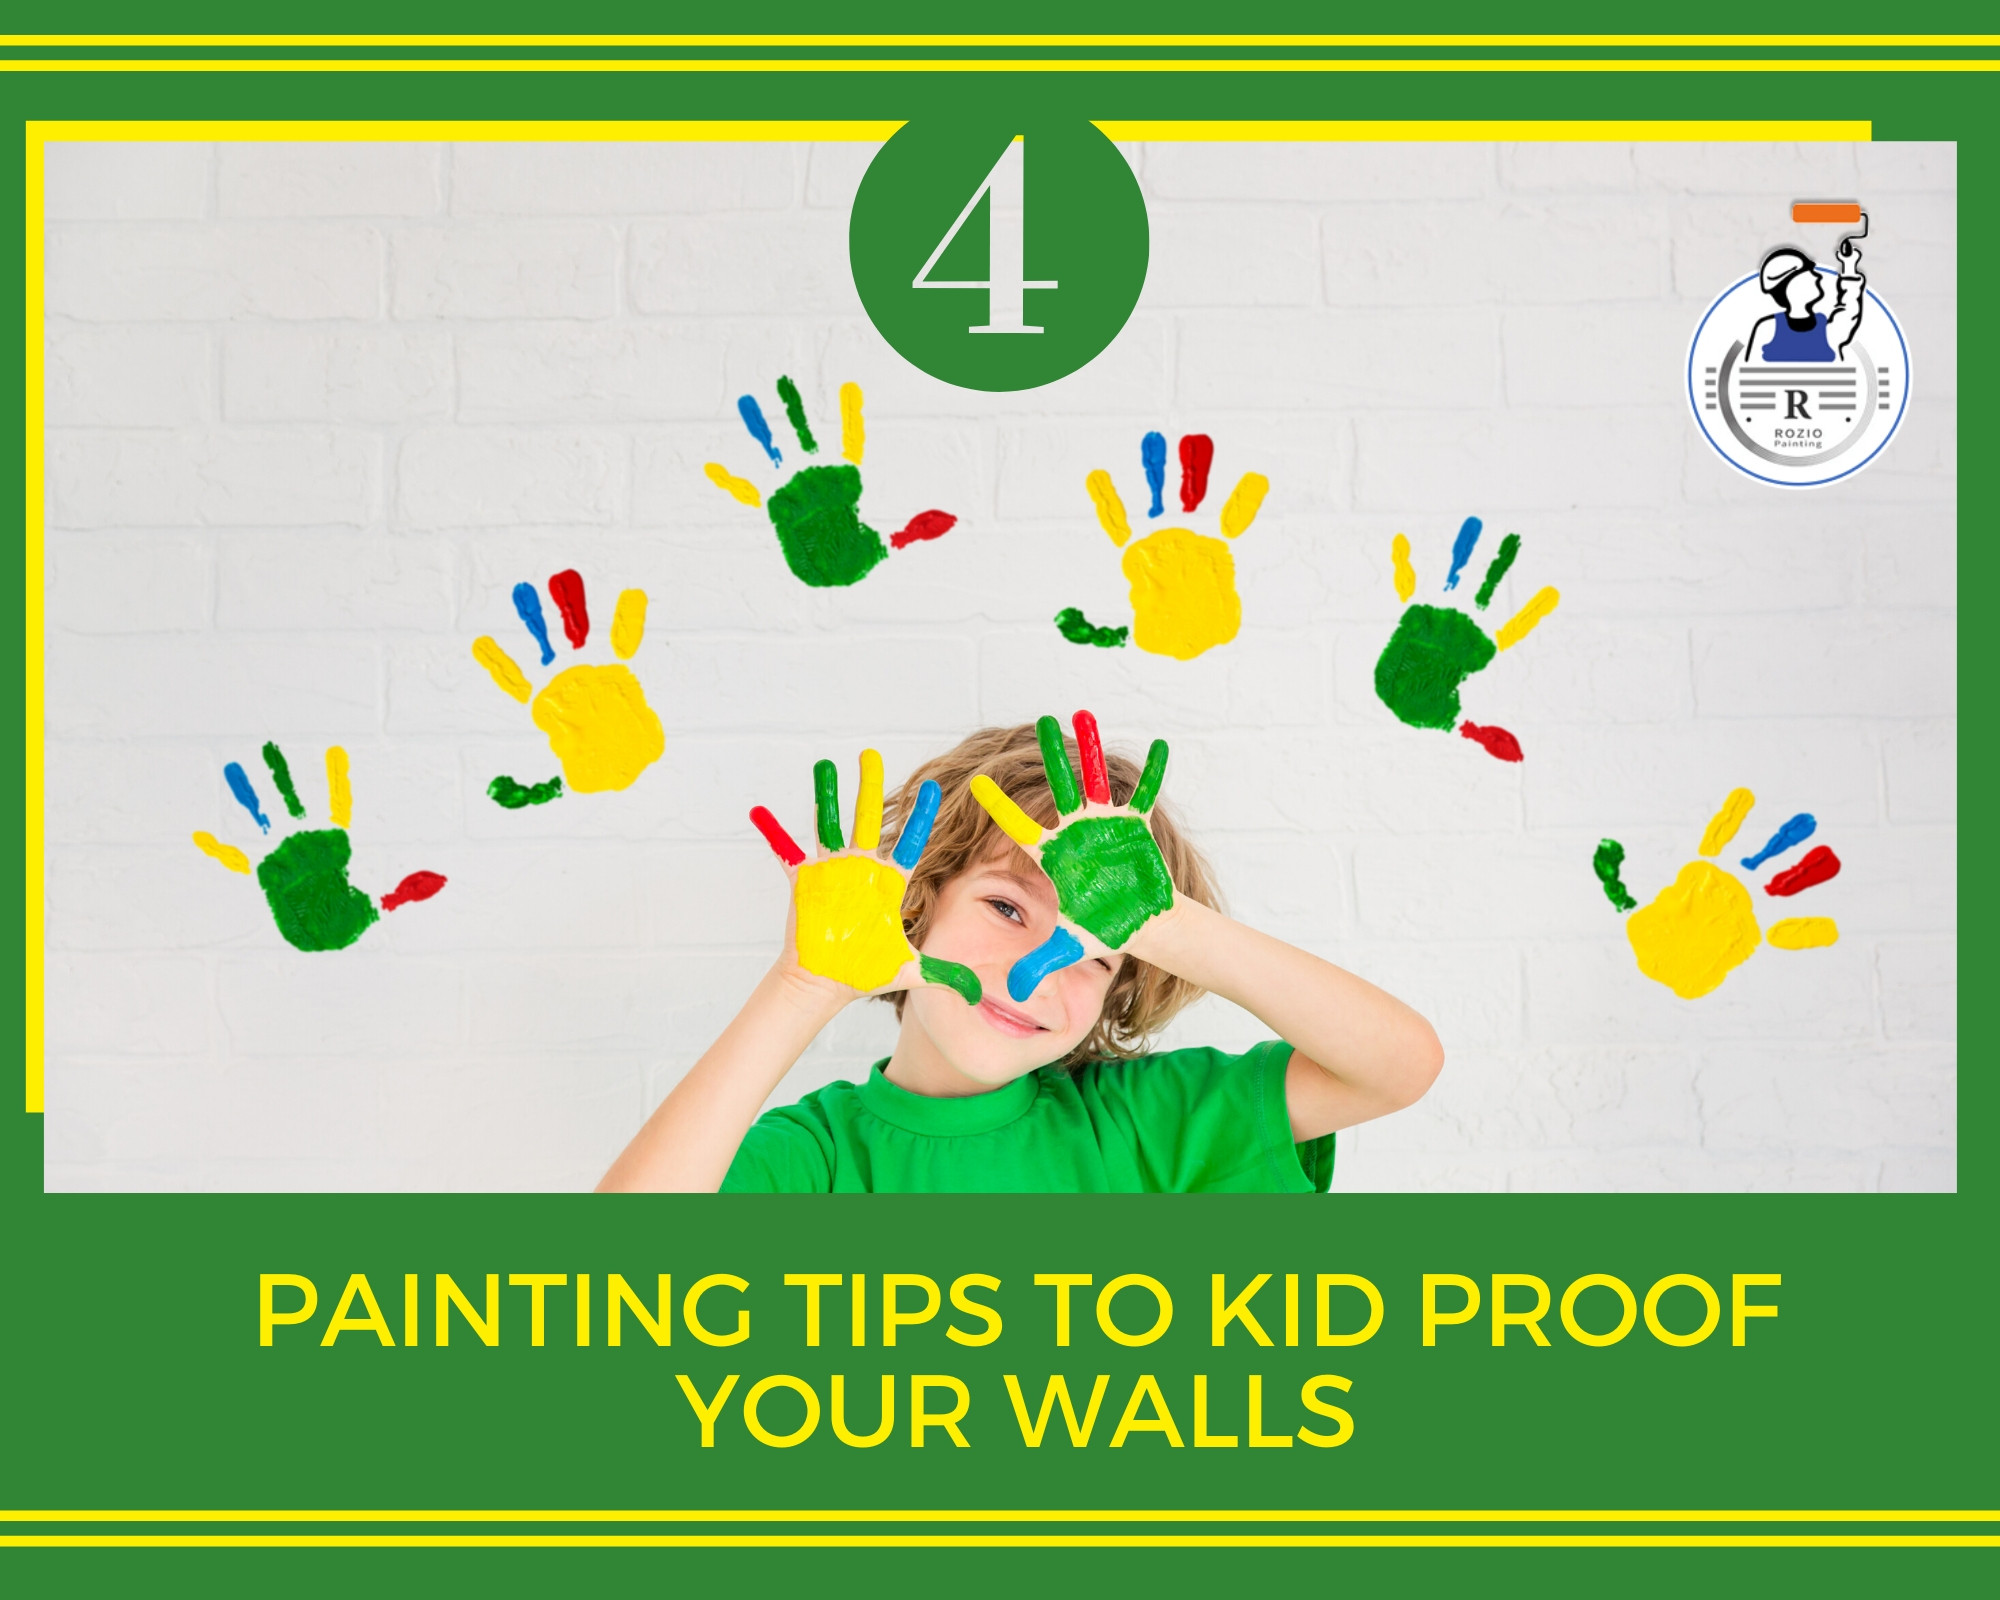 4 PAINTING TIPS TO KID PROOF YOUR WALLS